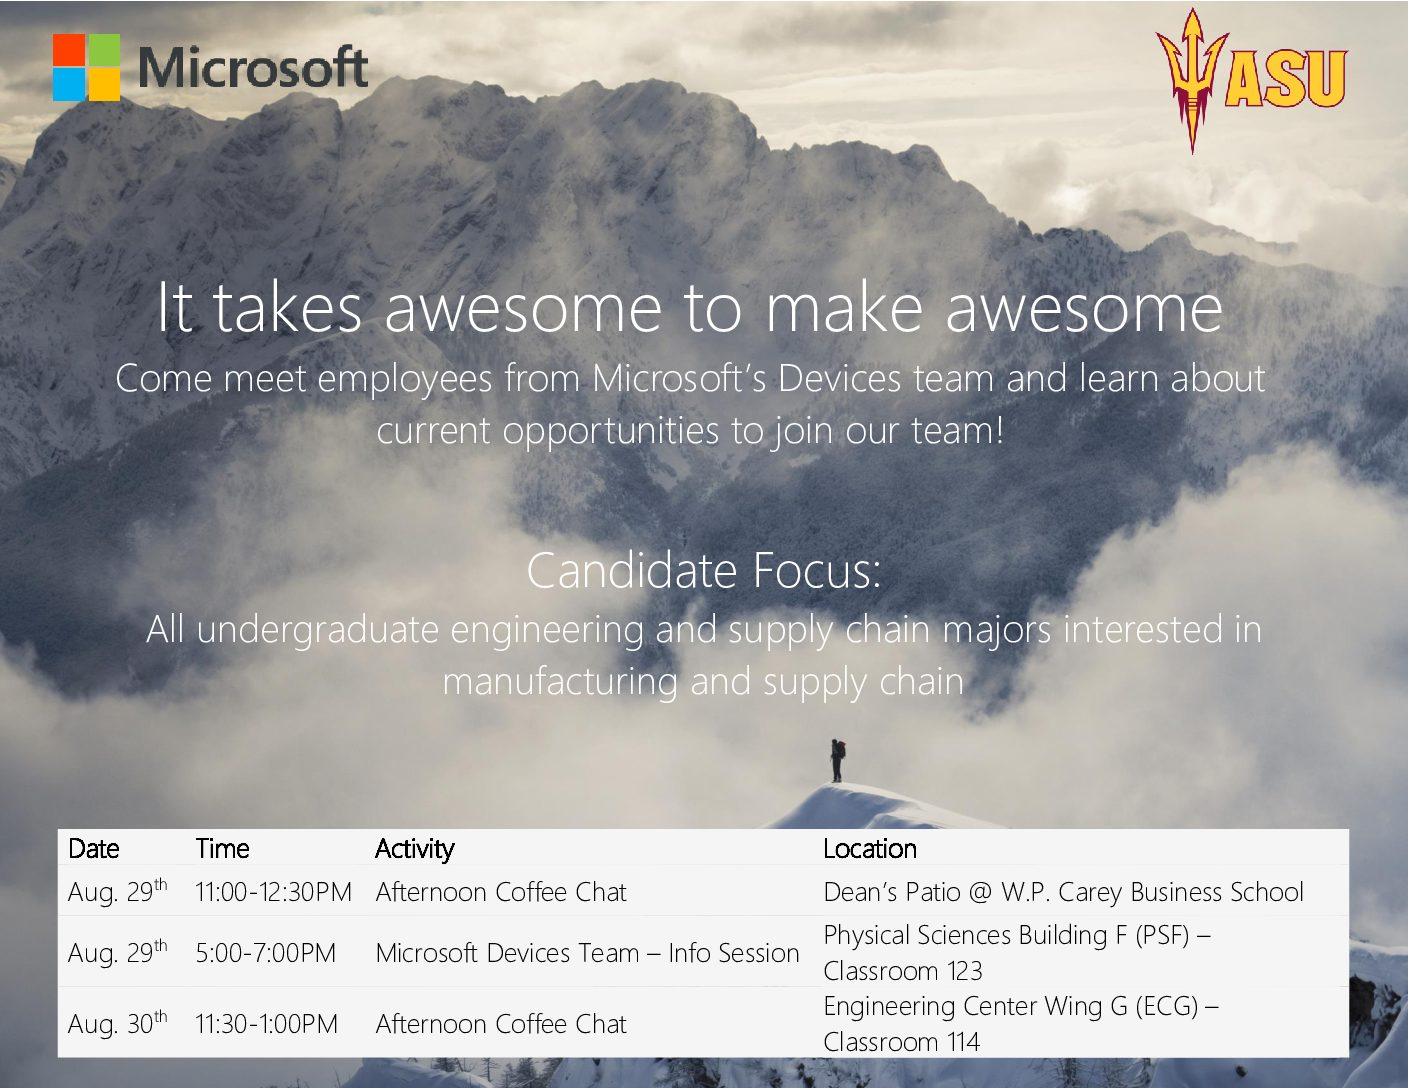 Learn how you can join Microsoft's Devices team, August 29